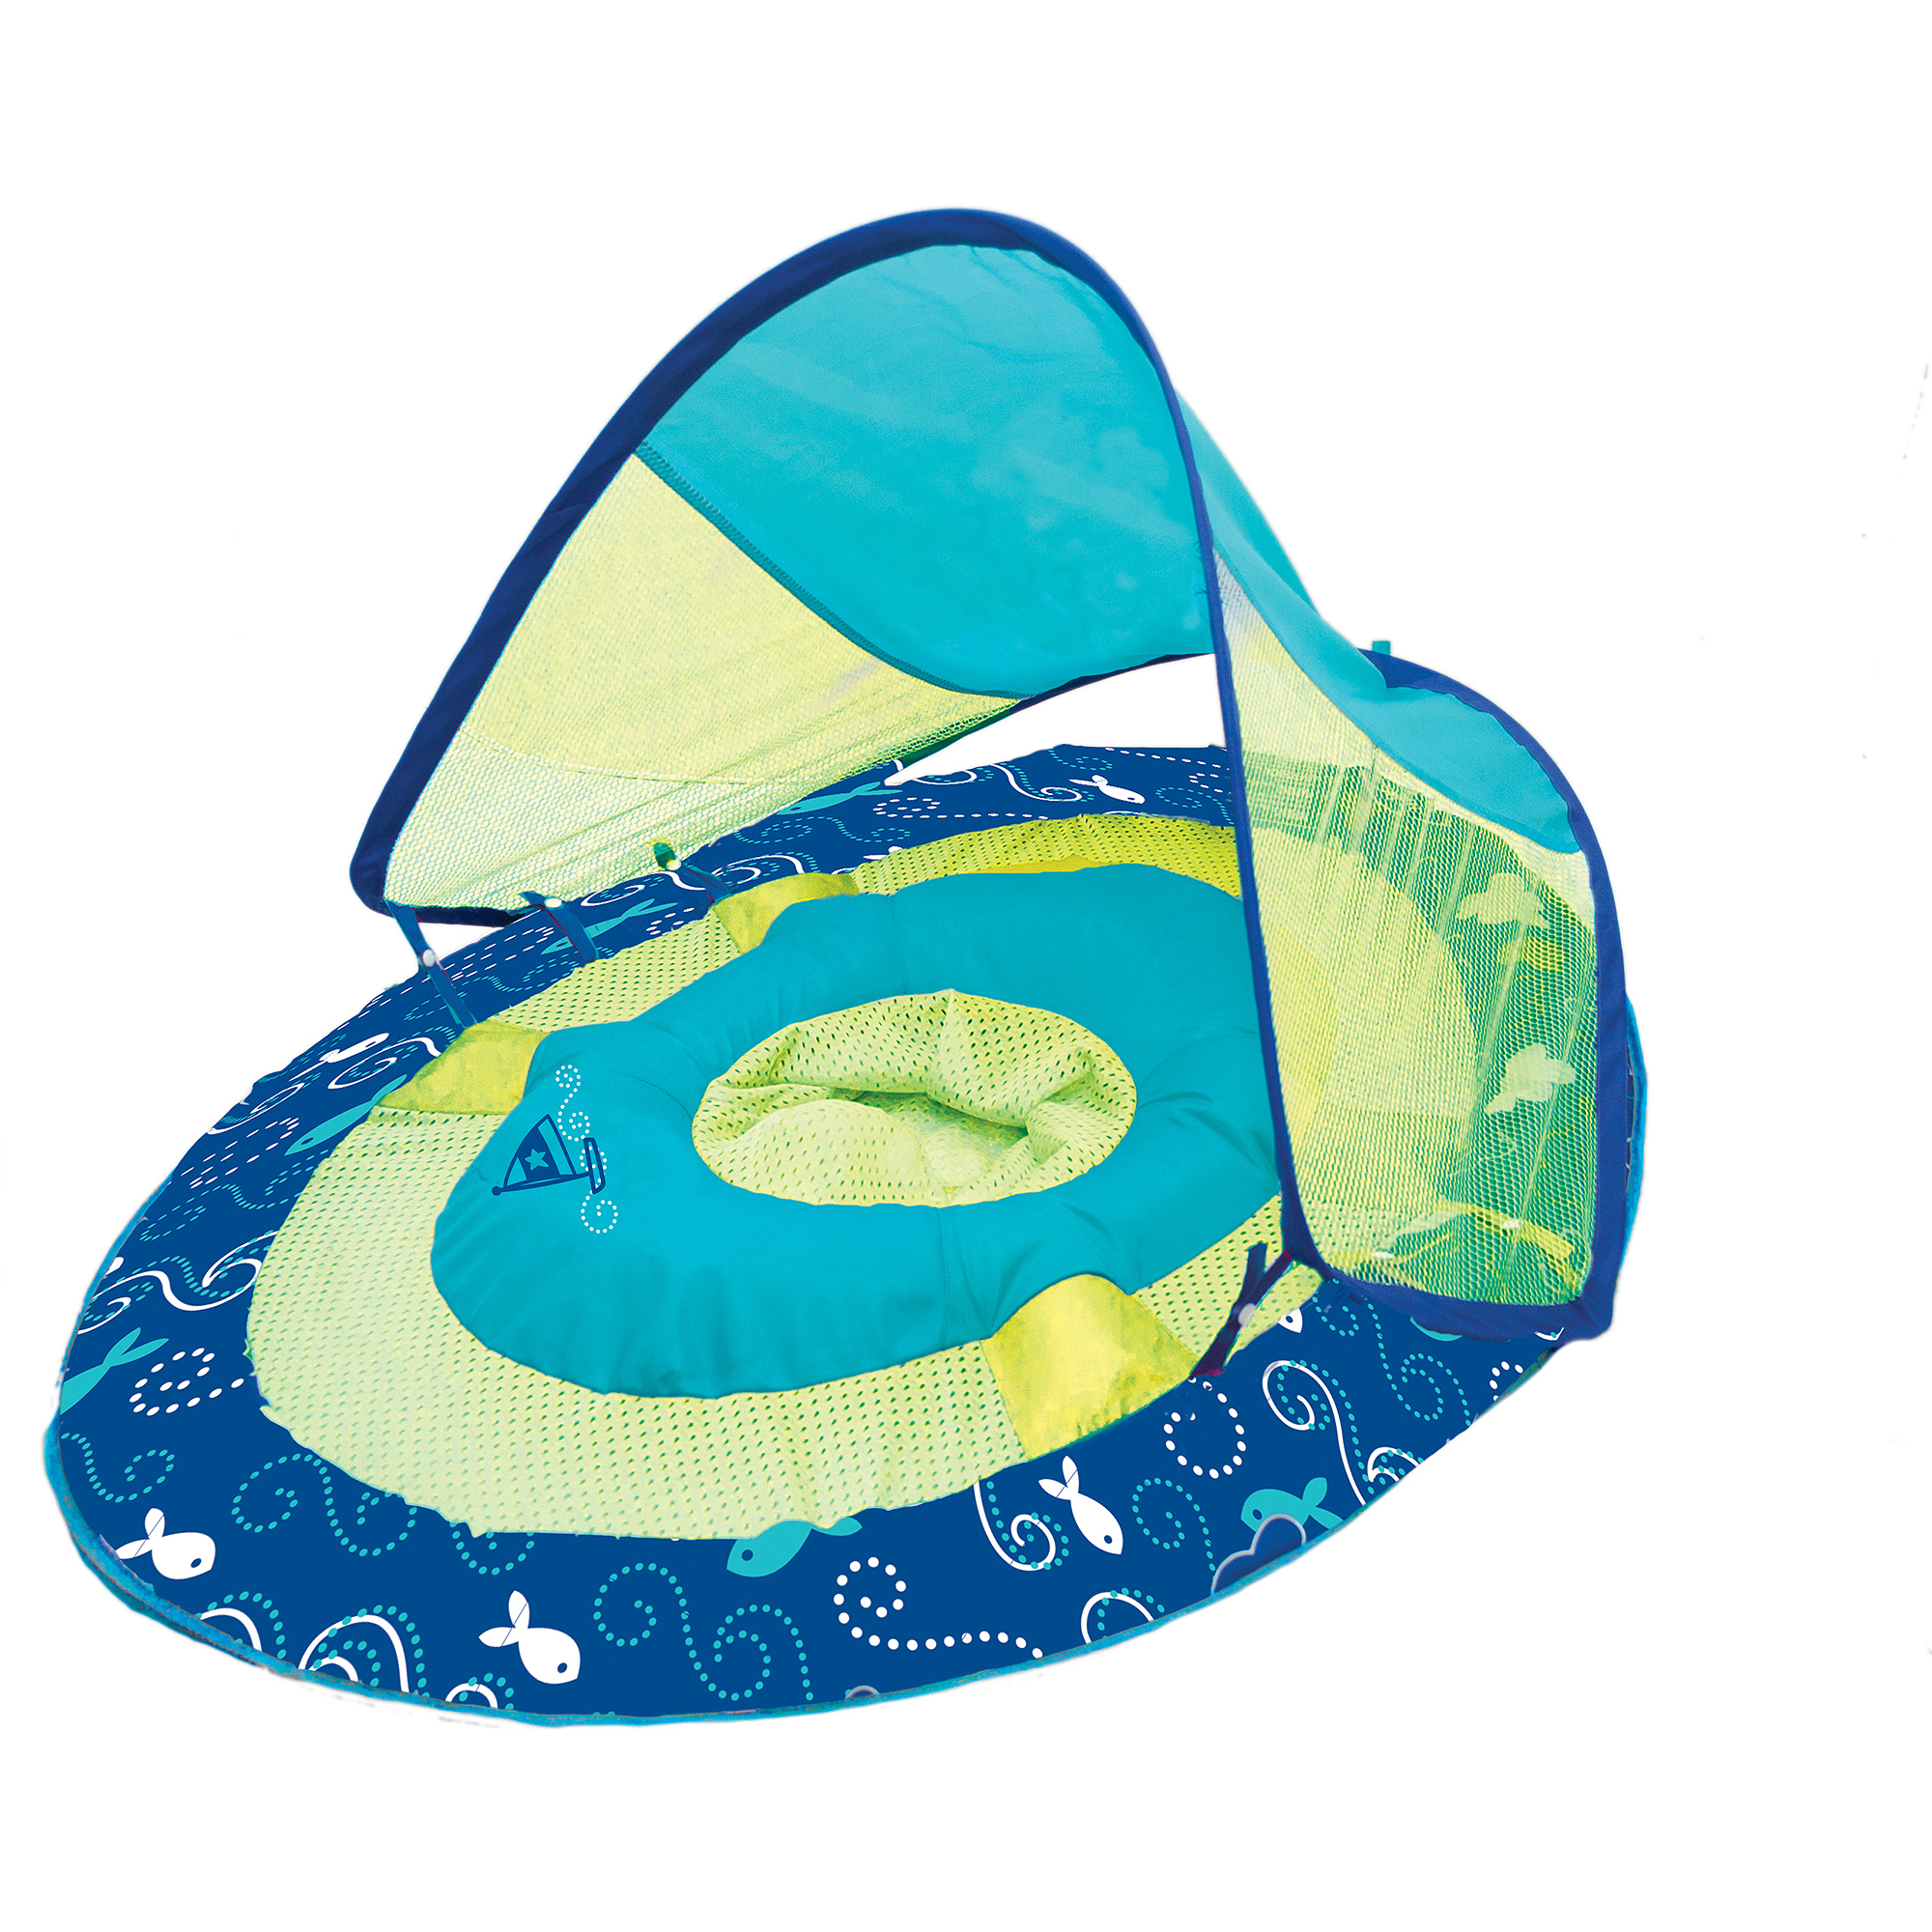 Baby Spring Float Sun Canopy, Blue/Yellow, Sailboat Print